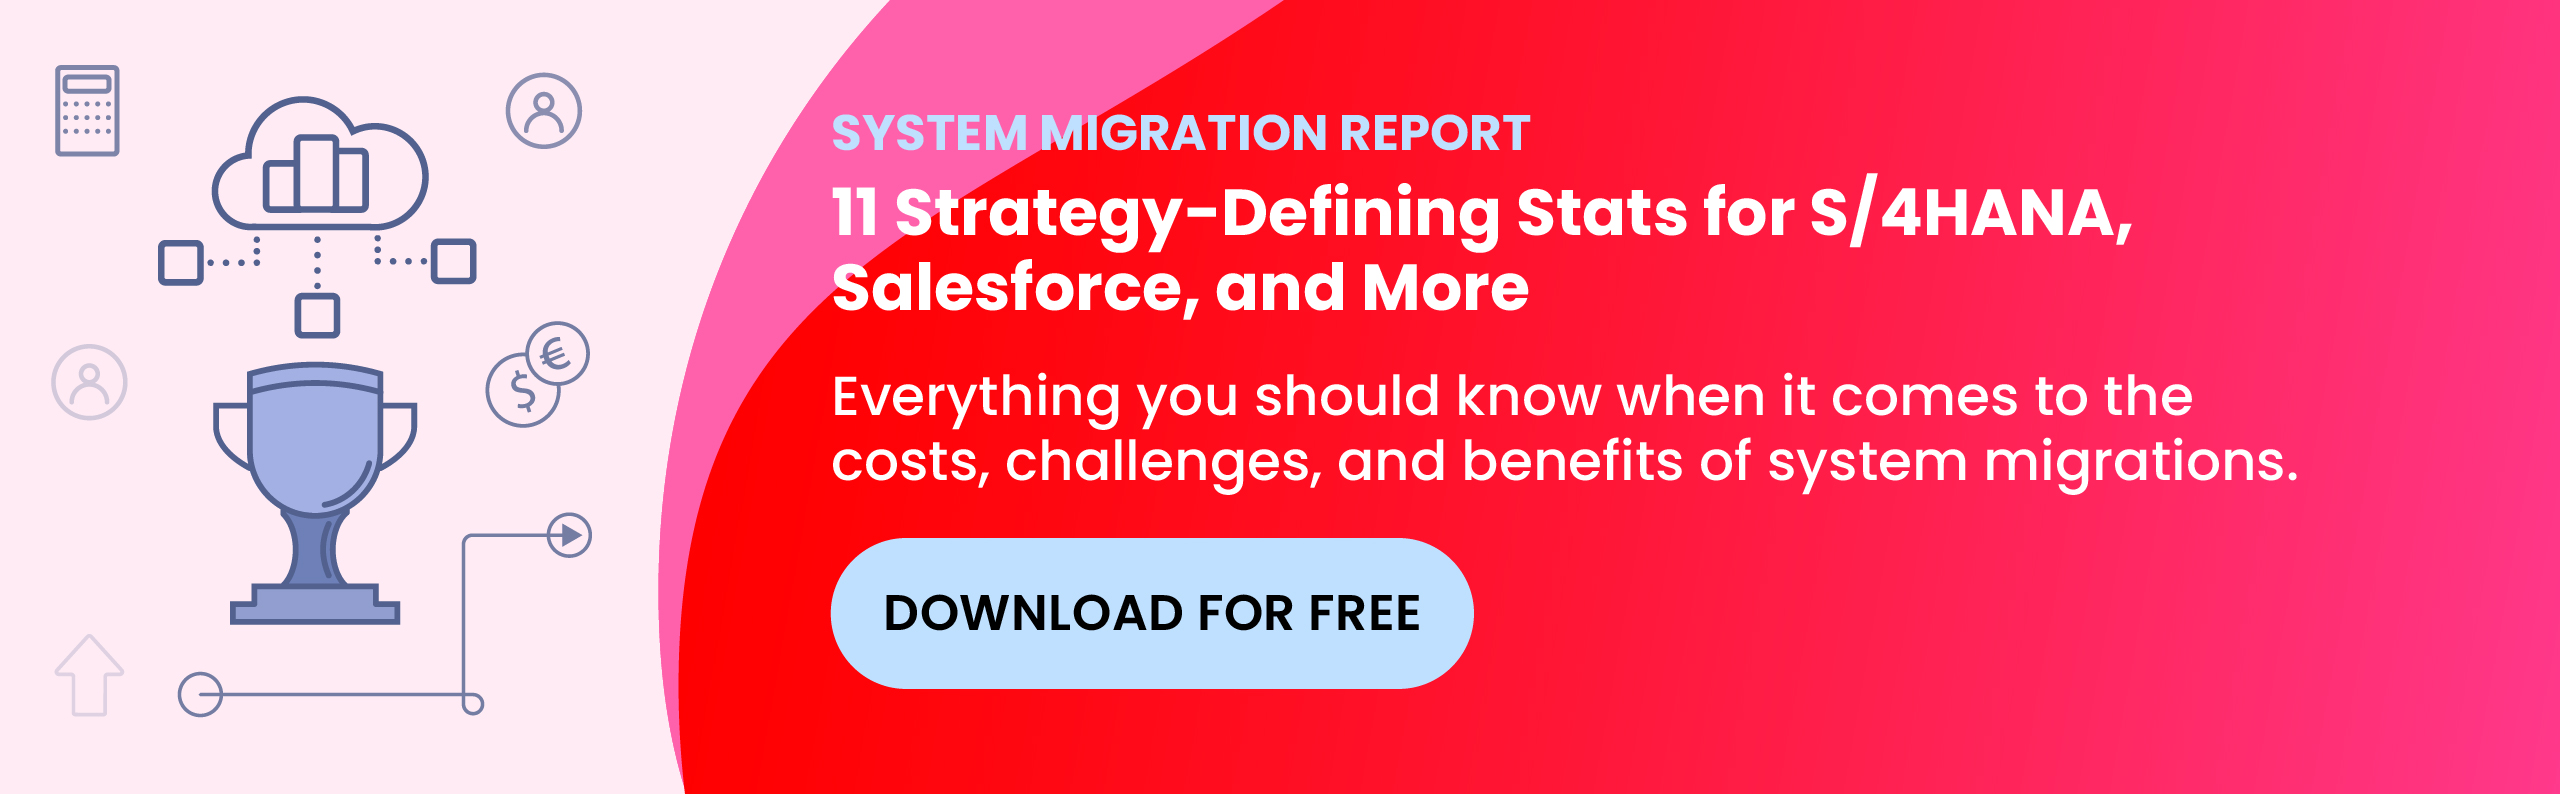 11 Strategy-Defining Stats for S/4HANA, Salesforce, and More